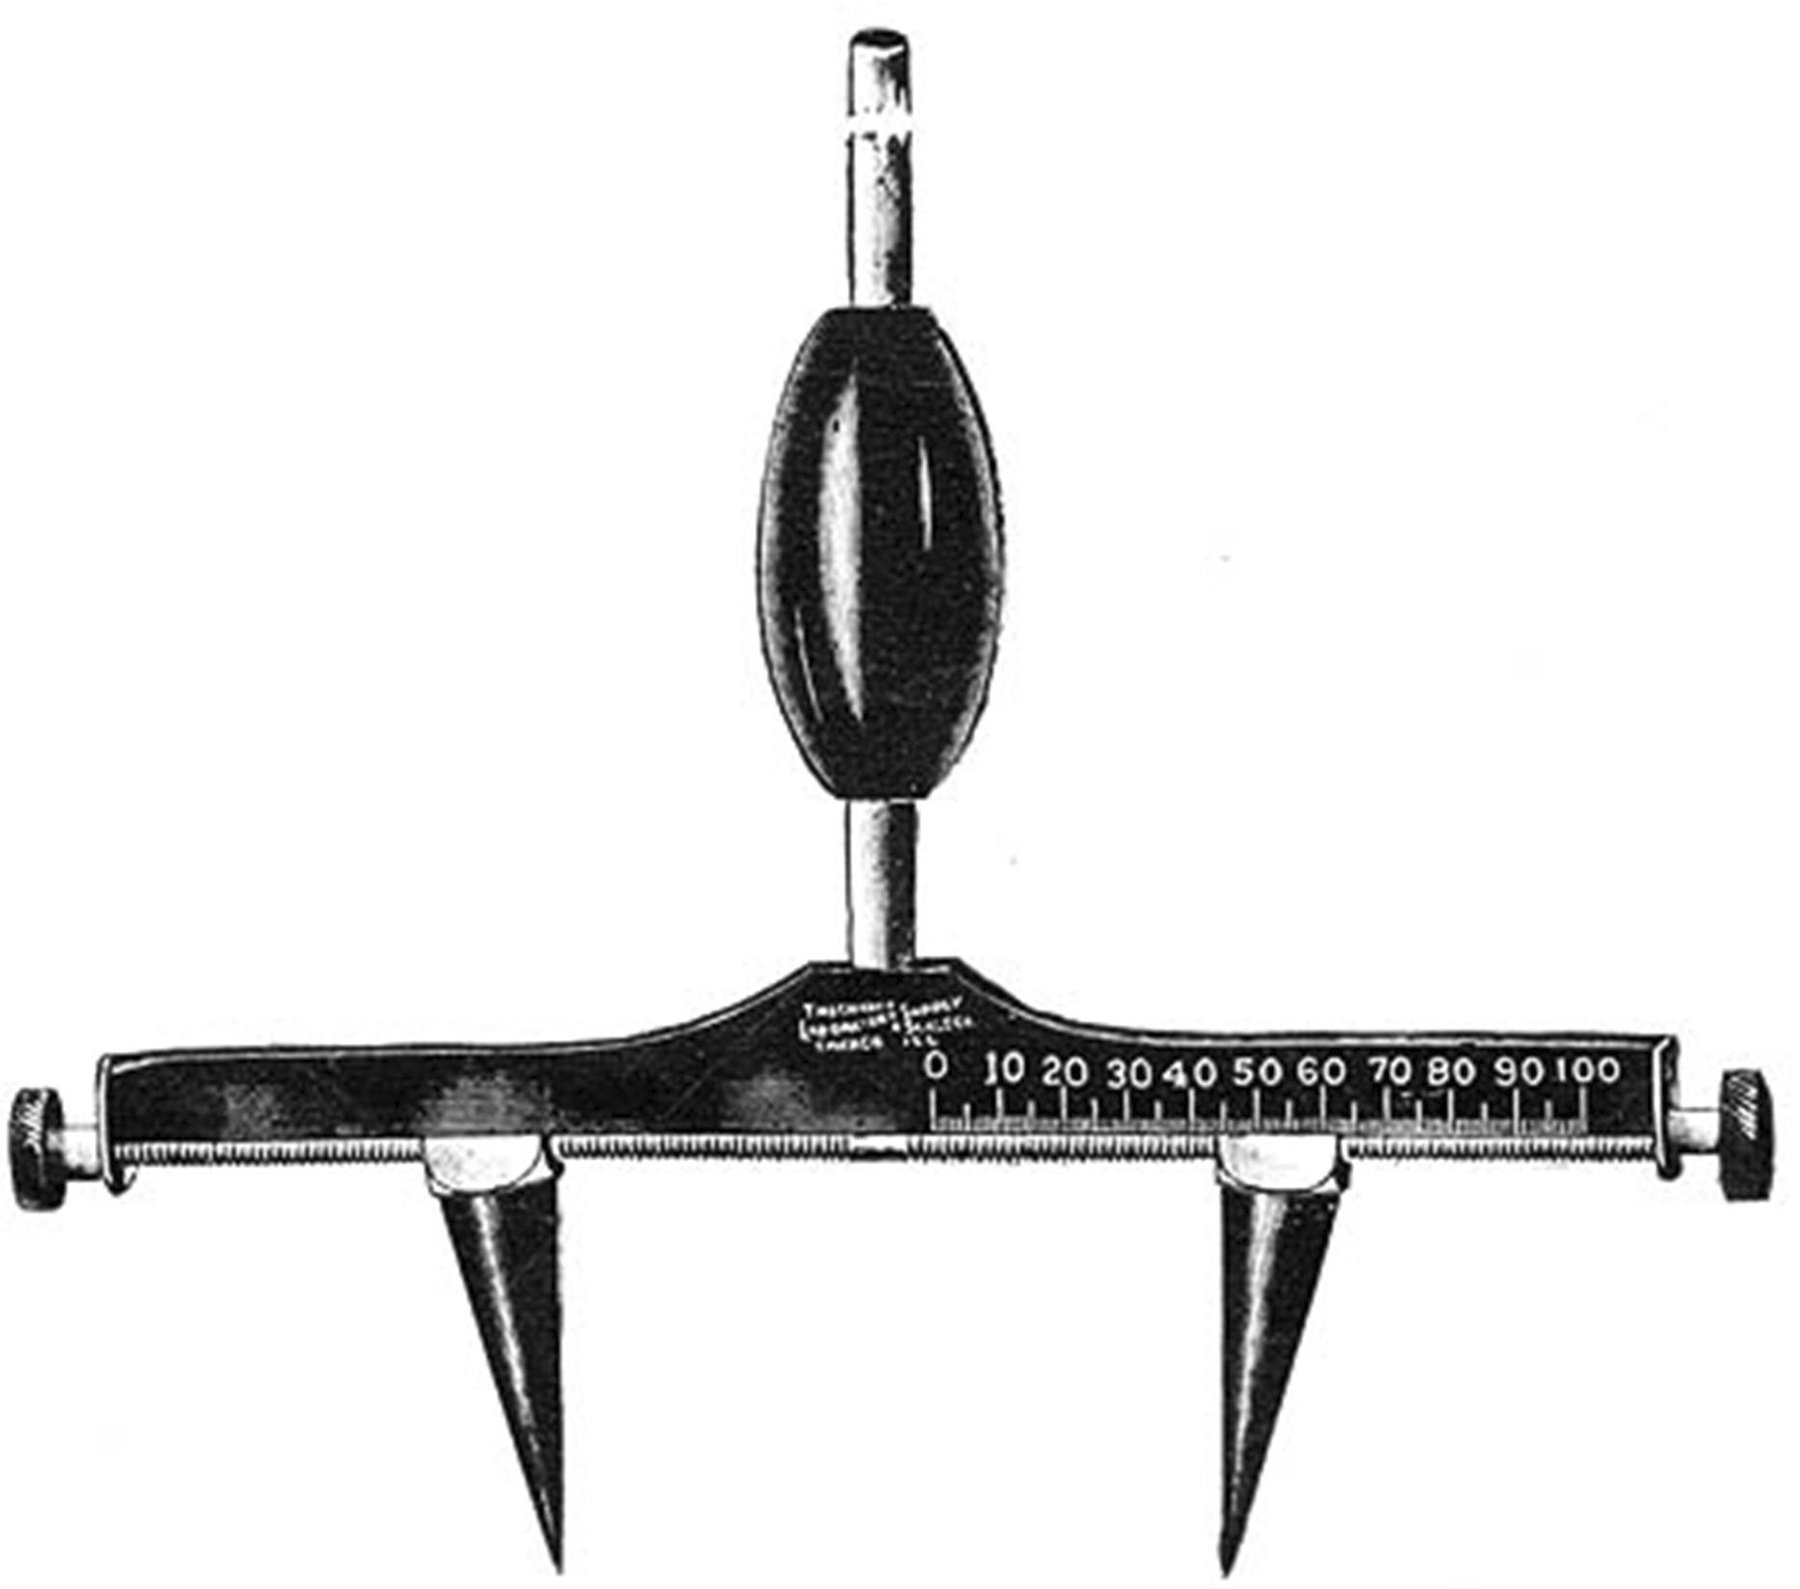 Webers Compass And Aesthesiometers History Of The